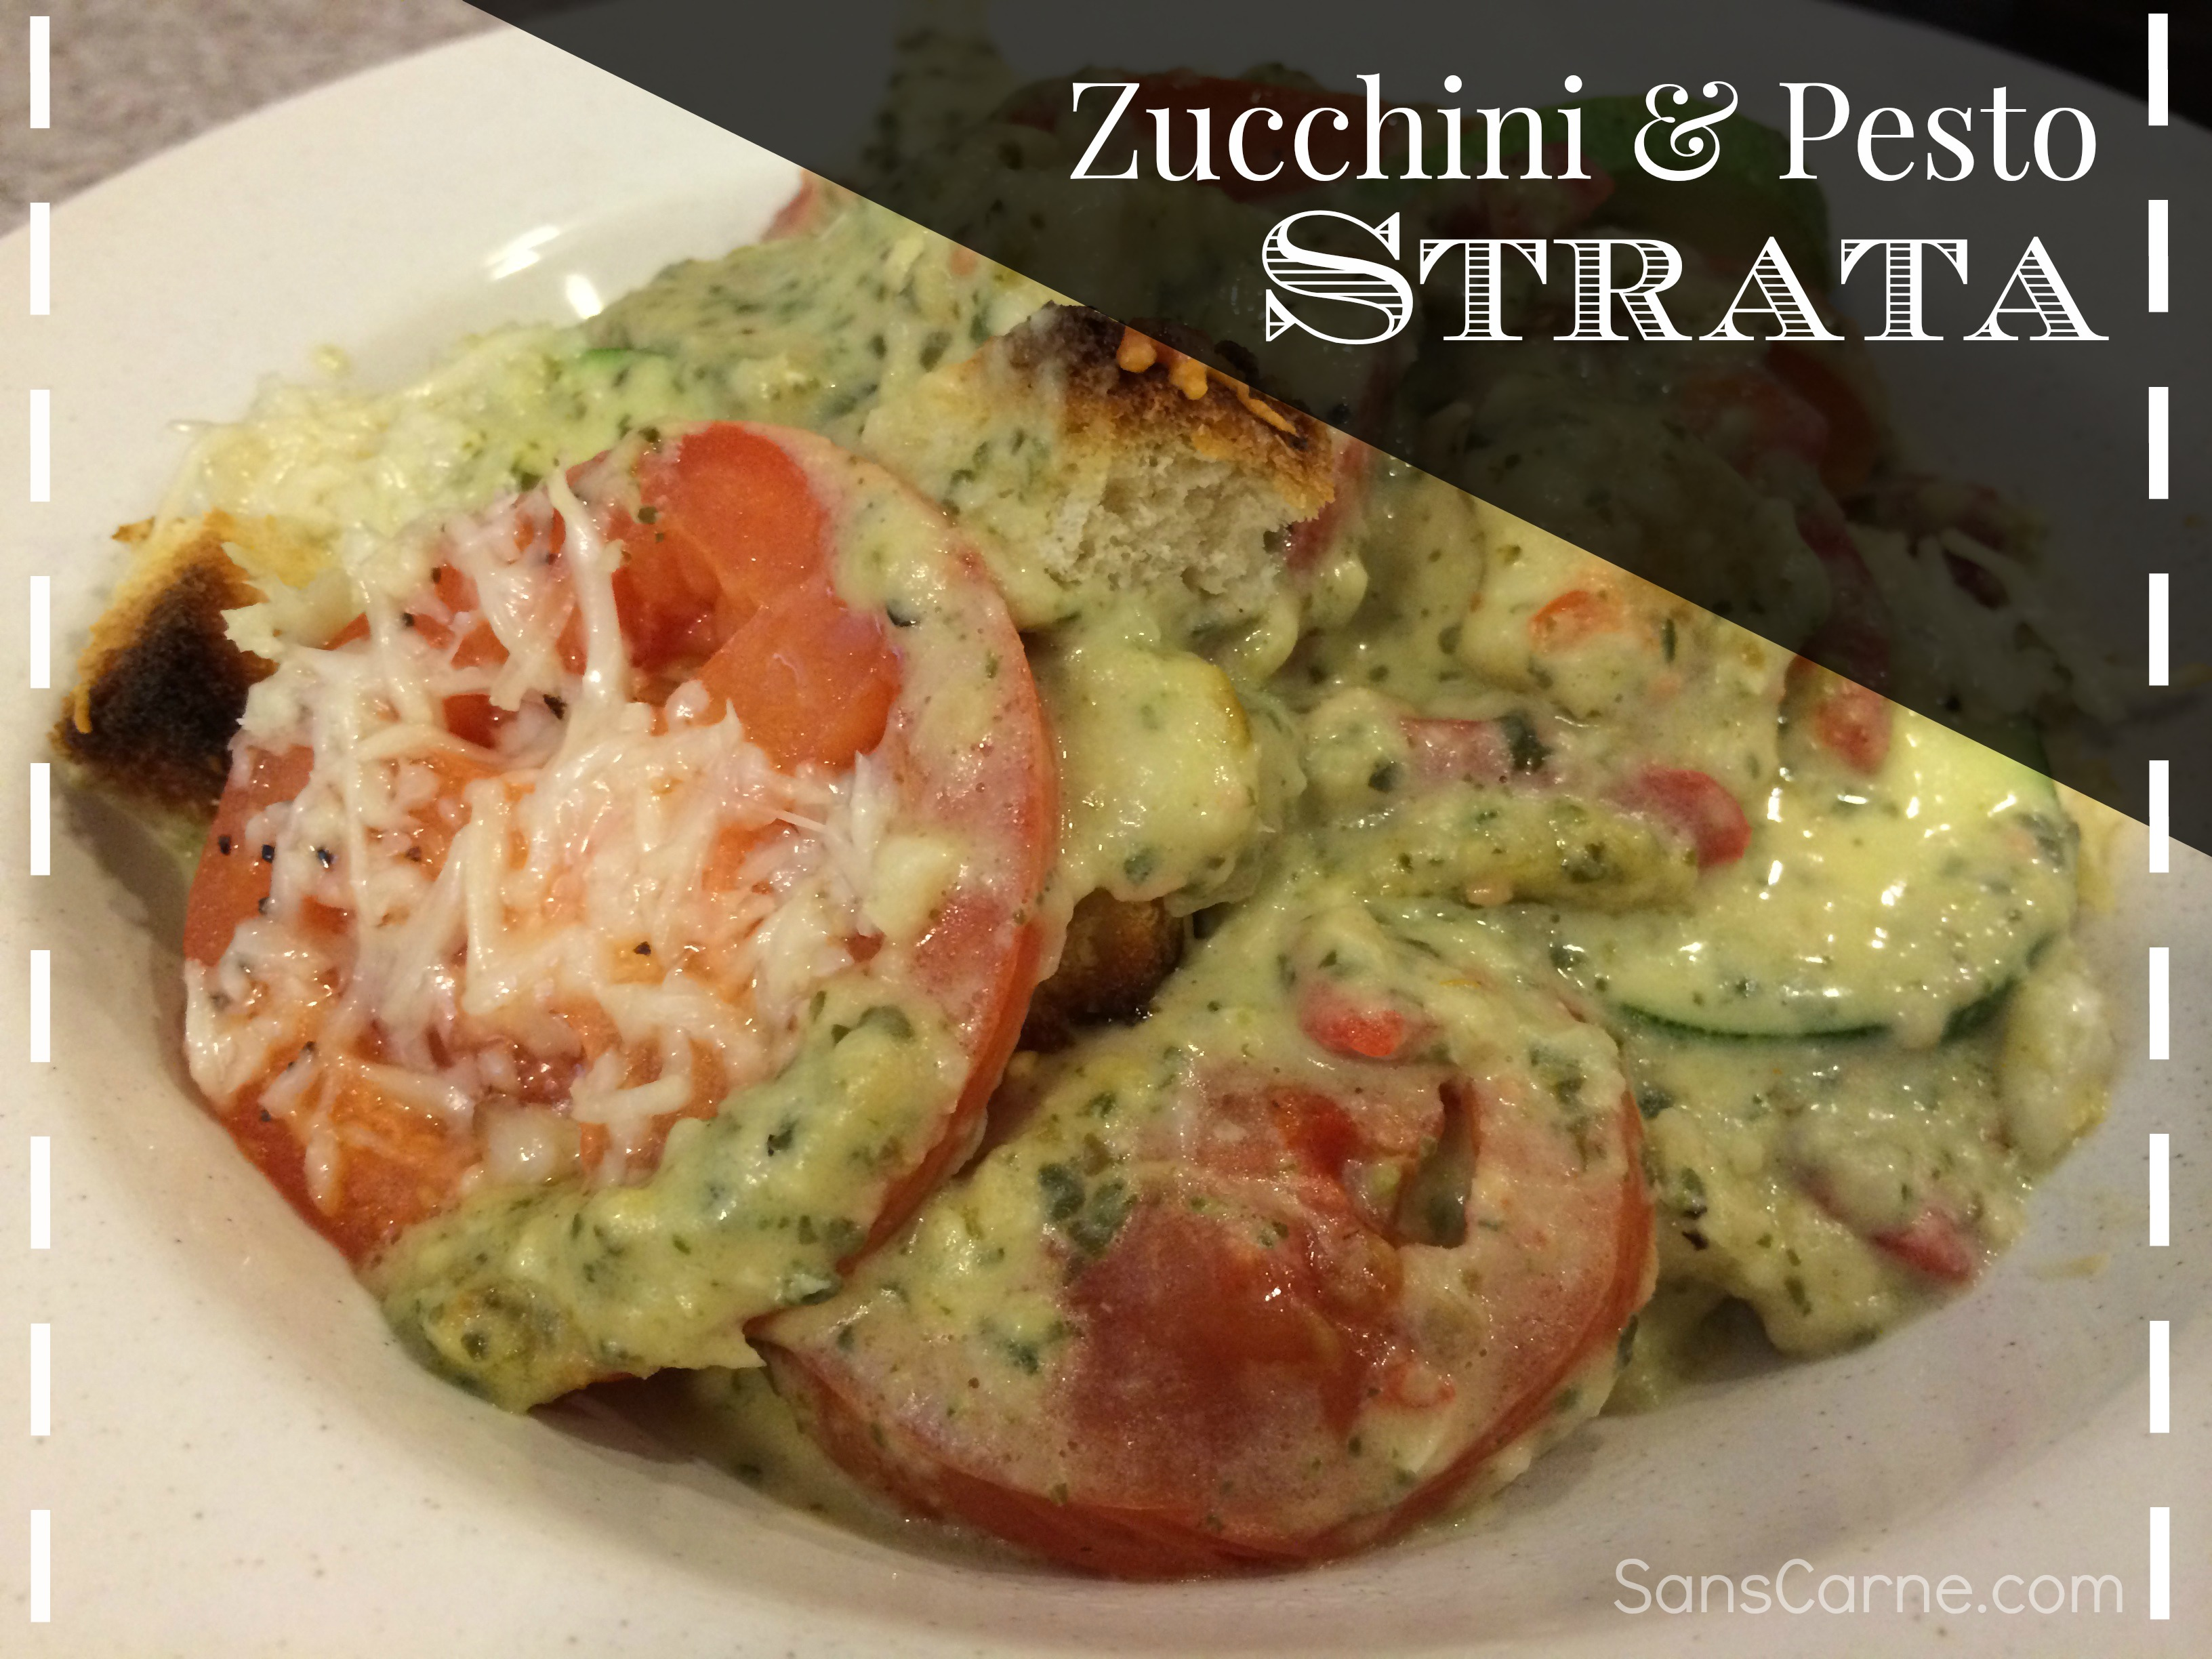 ... clean eating with fresh ingredients – tomatoes, zucchini, and beans